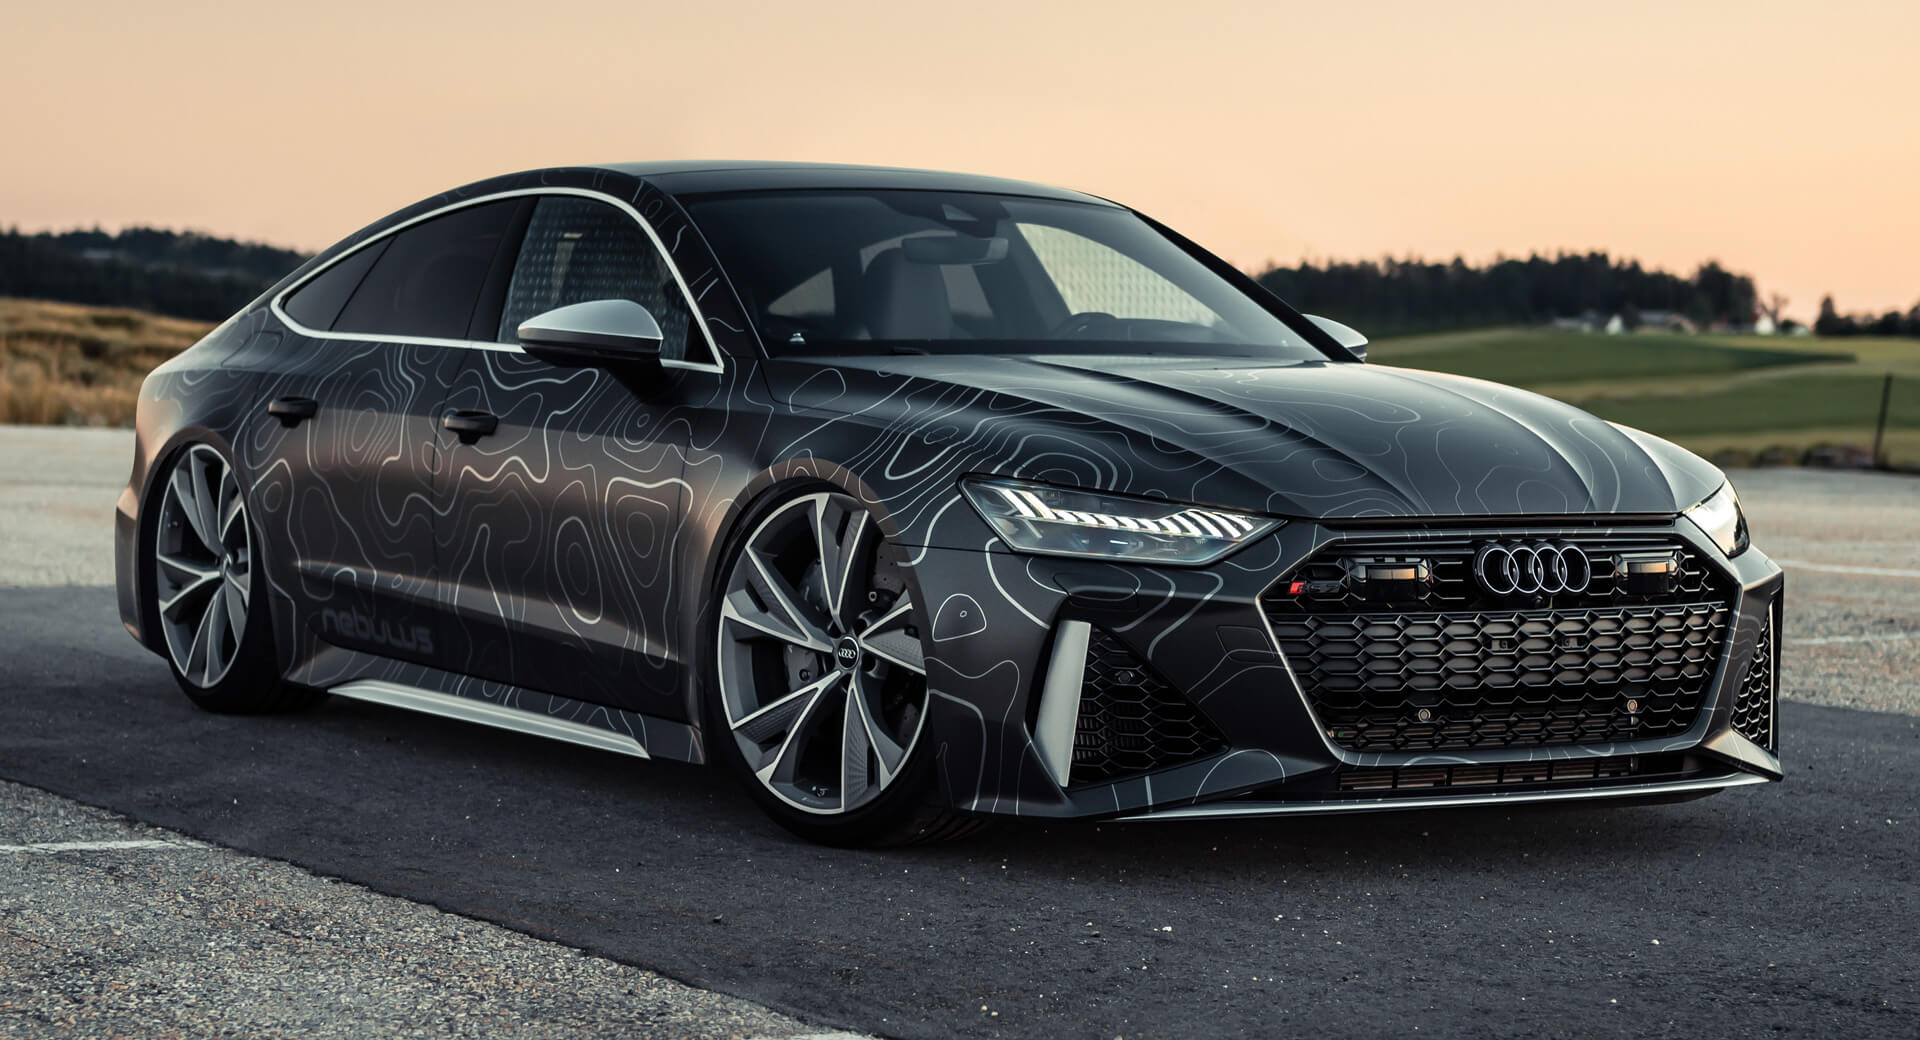 Tuned Audi Rs7 Sports 942hp Black Diamond Matte Wrap Carscoops